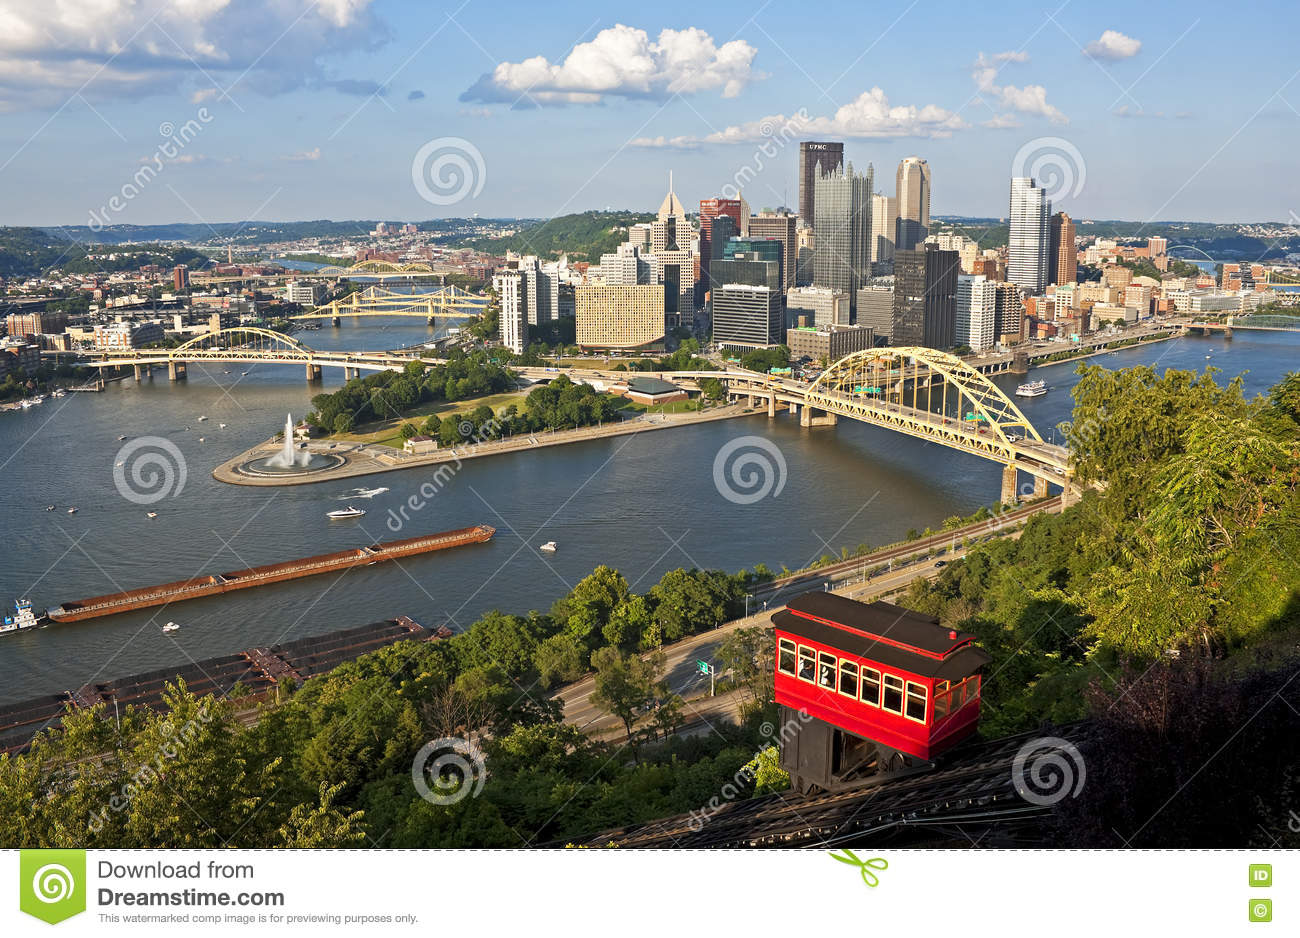 Pittsburgh with the Duquesne Incline